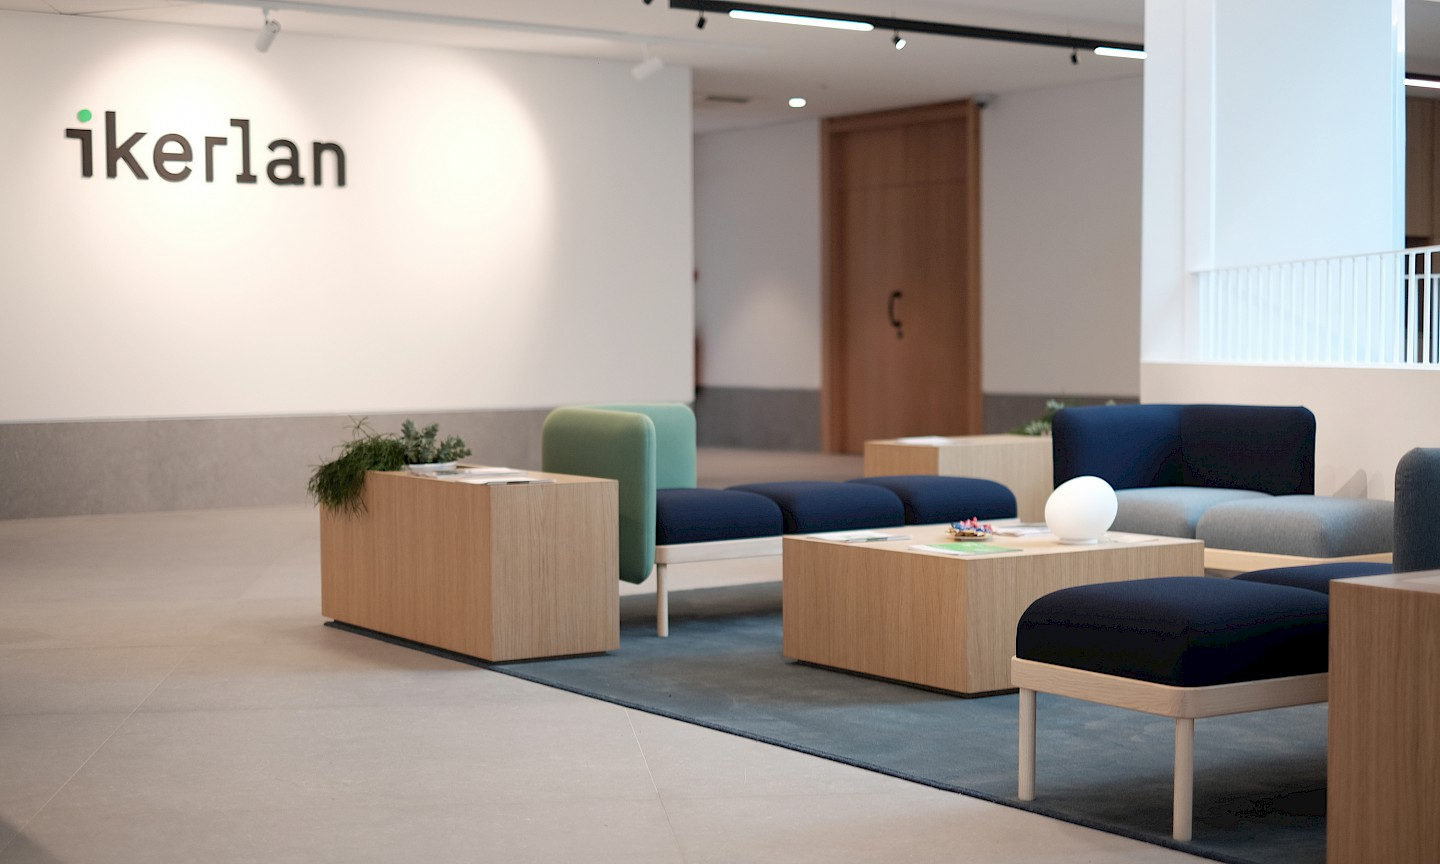 ikerlan design branding technology move environment_11